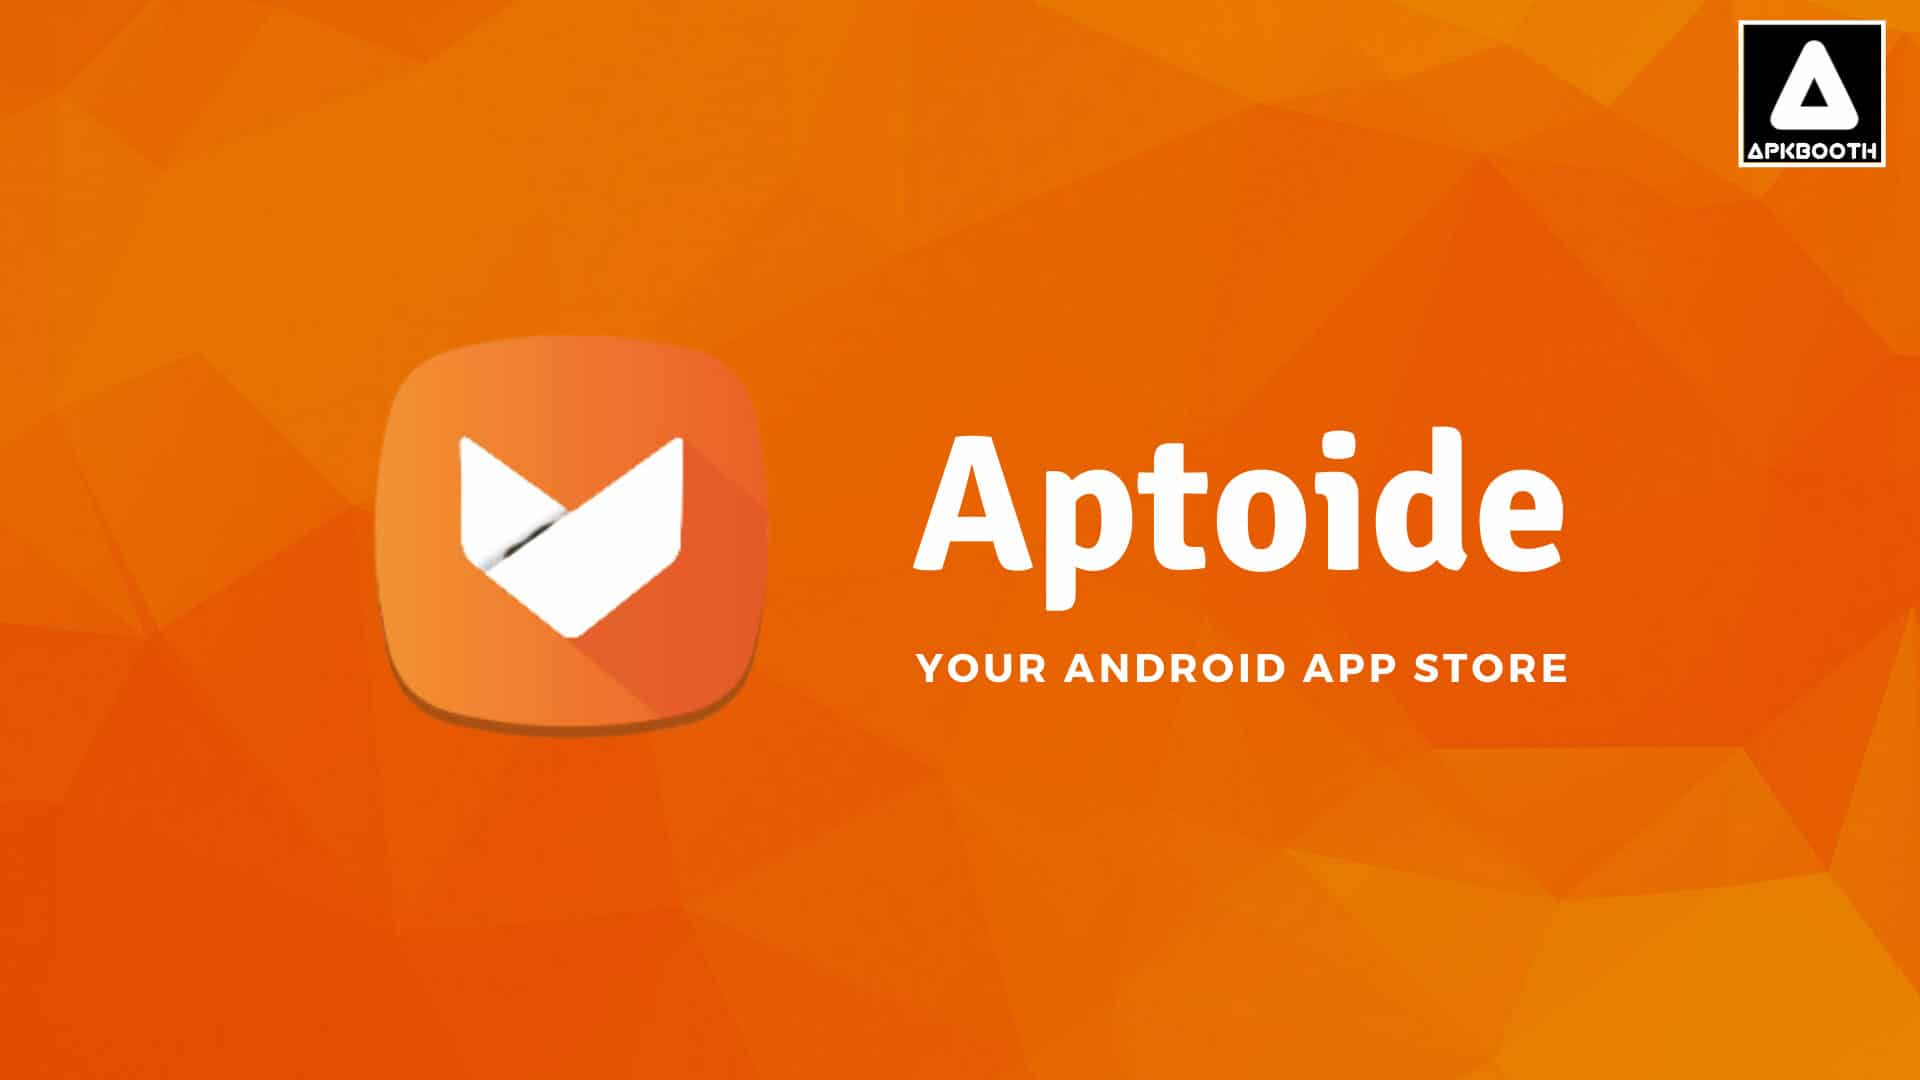 Aptoide Apk iOS\/APK Version Full Game Free Download - The Gamer HQ